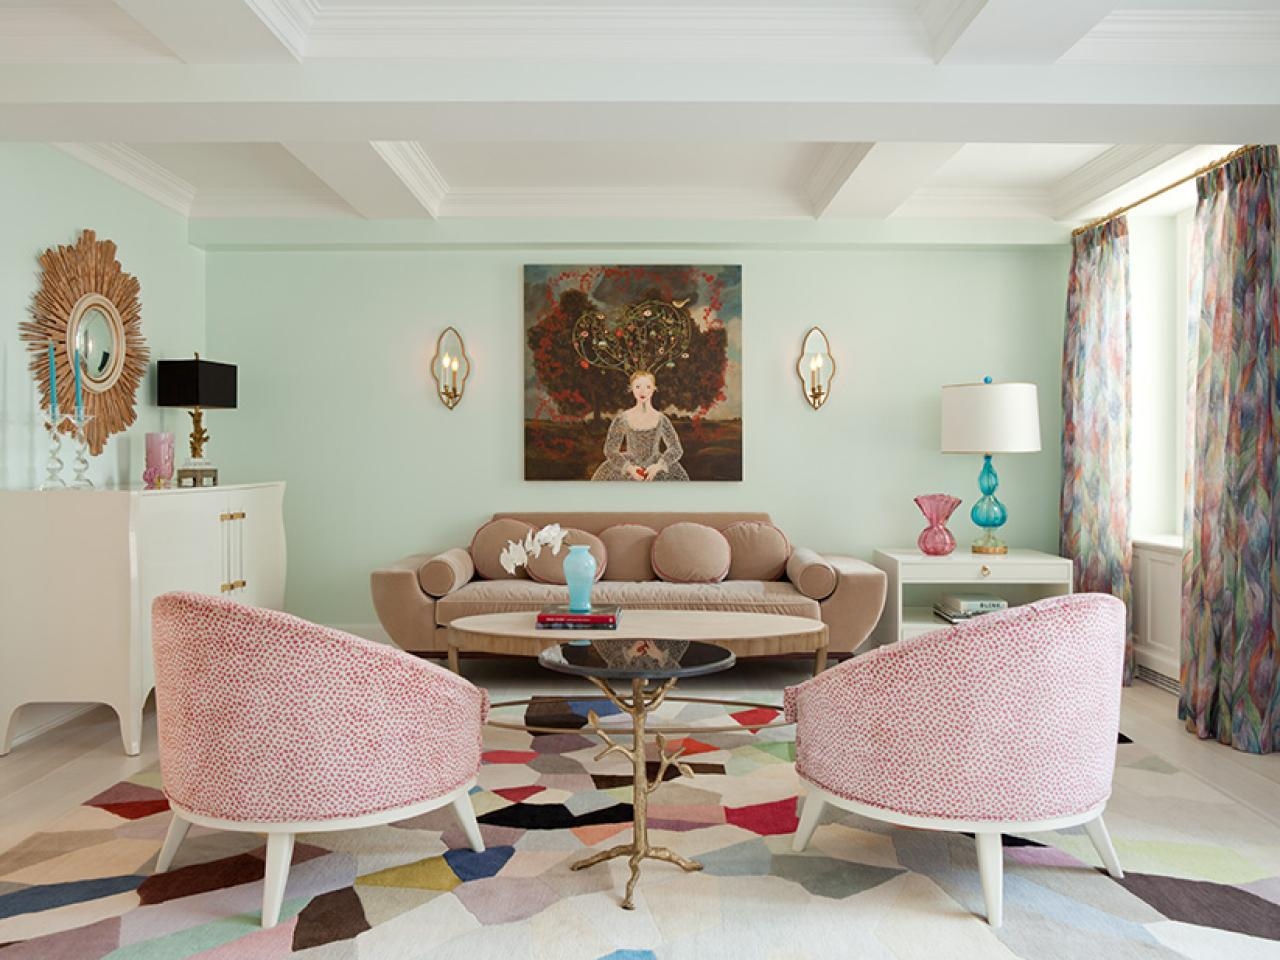 & 15 Magnificent Pastel Living Room Designs That Will Catch Your Eye